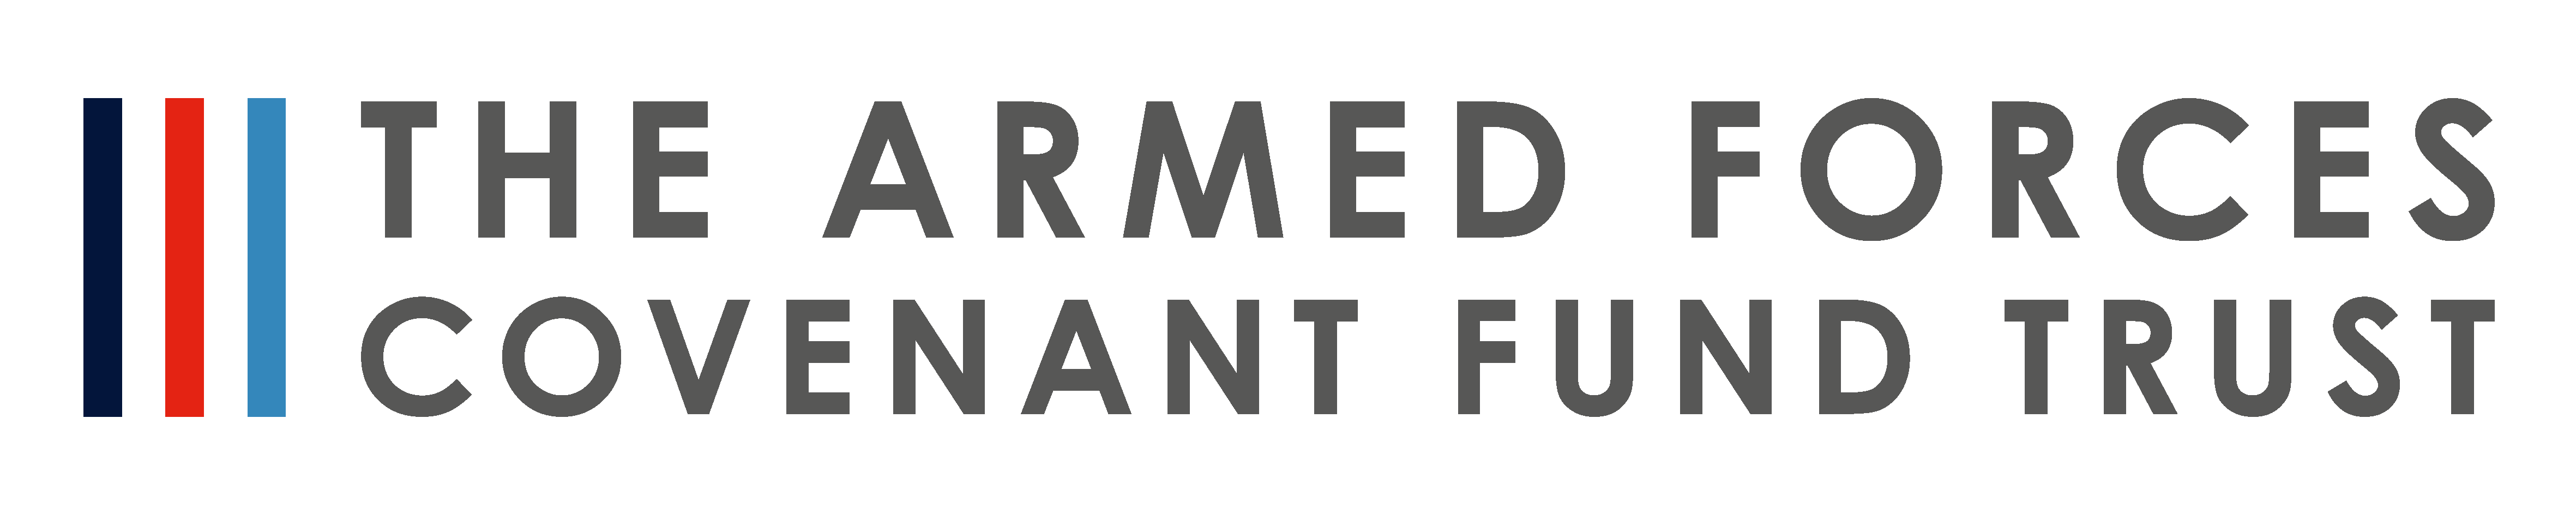 The Armed Forces Covenant Fund Trust logo